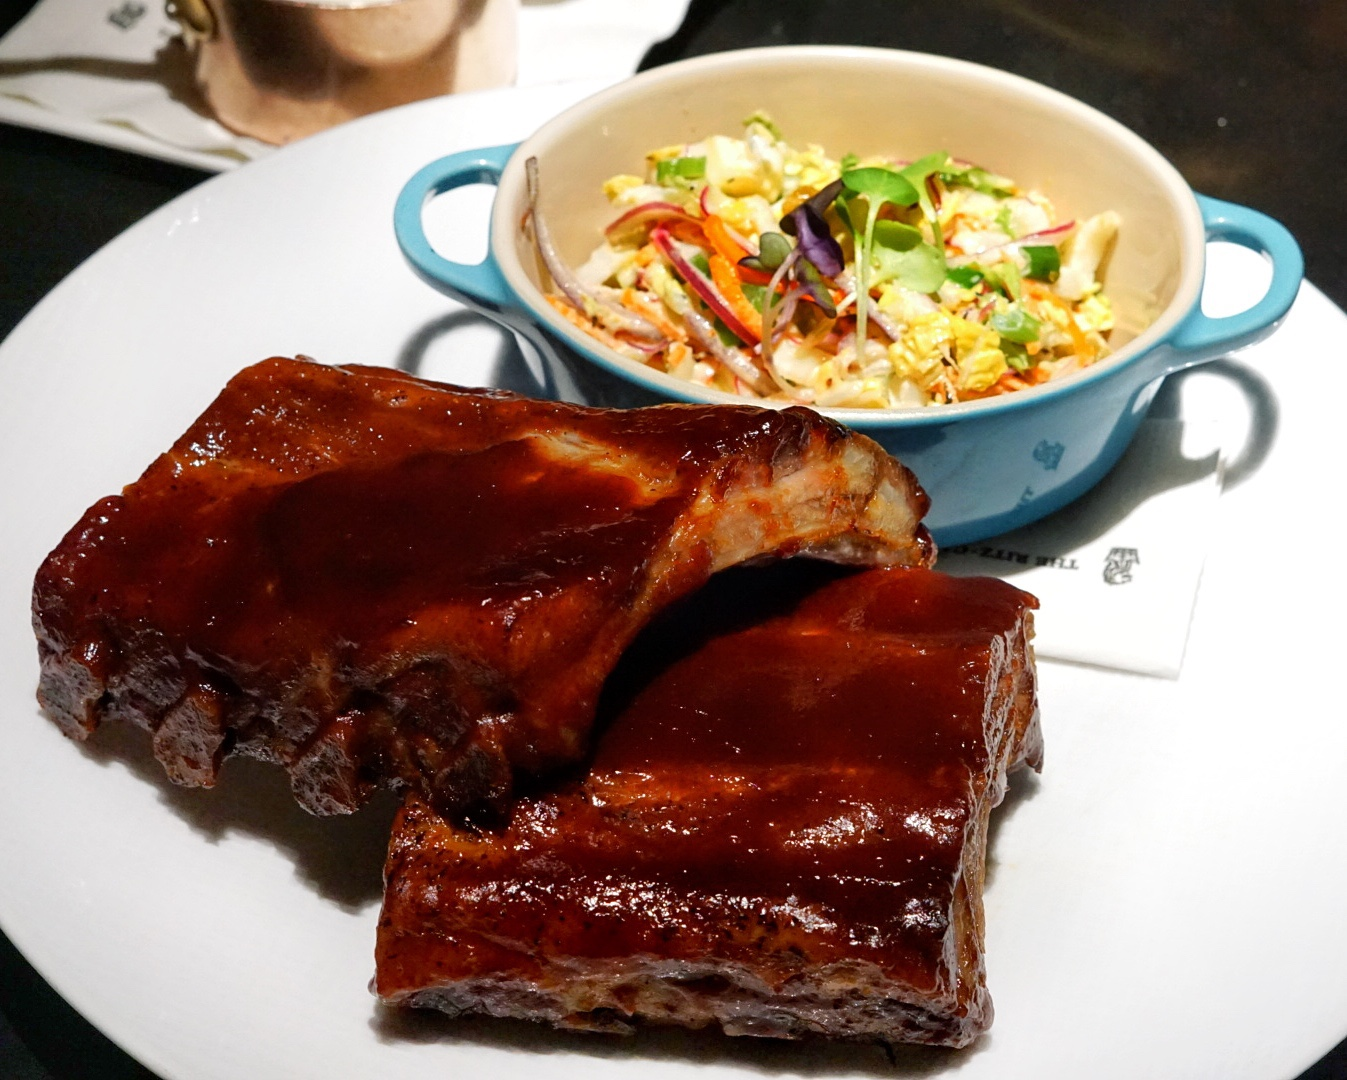 The Niman Ranch Pork Baby Back Ribs are dressed in Seven's Signature BBQ rub and served with a Caribbean slaw during Thursday's Prime Rib Night.